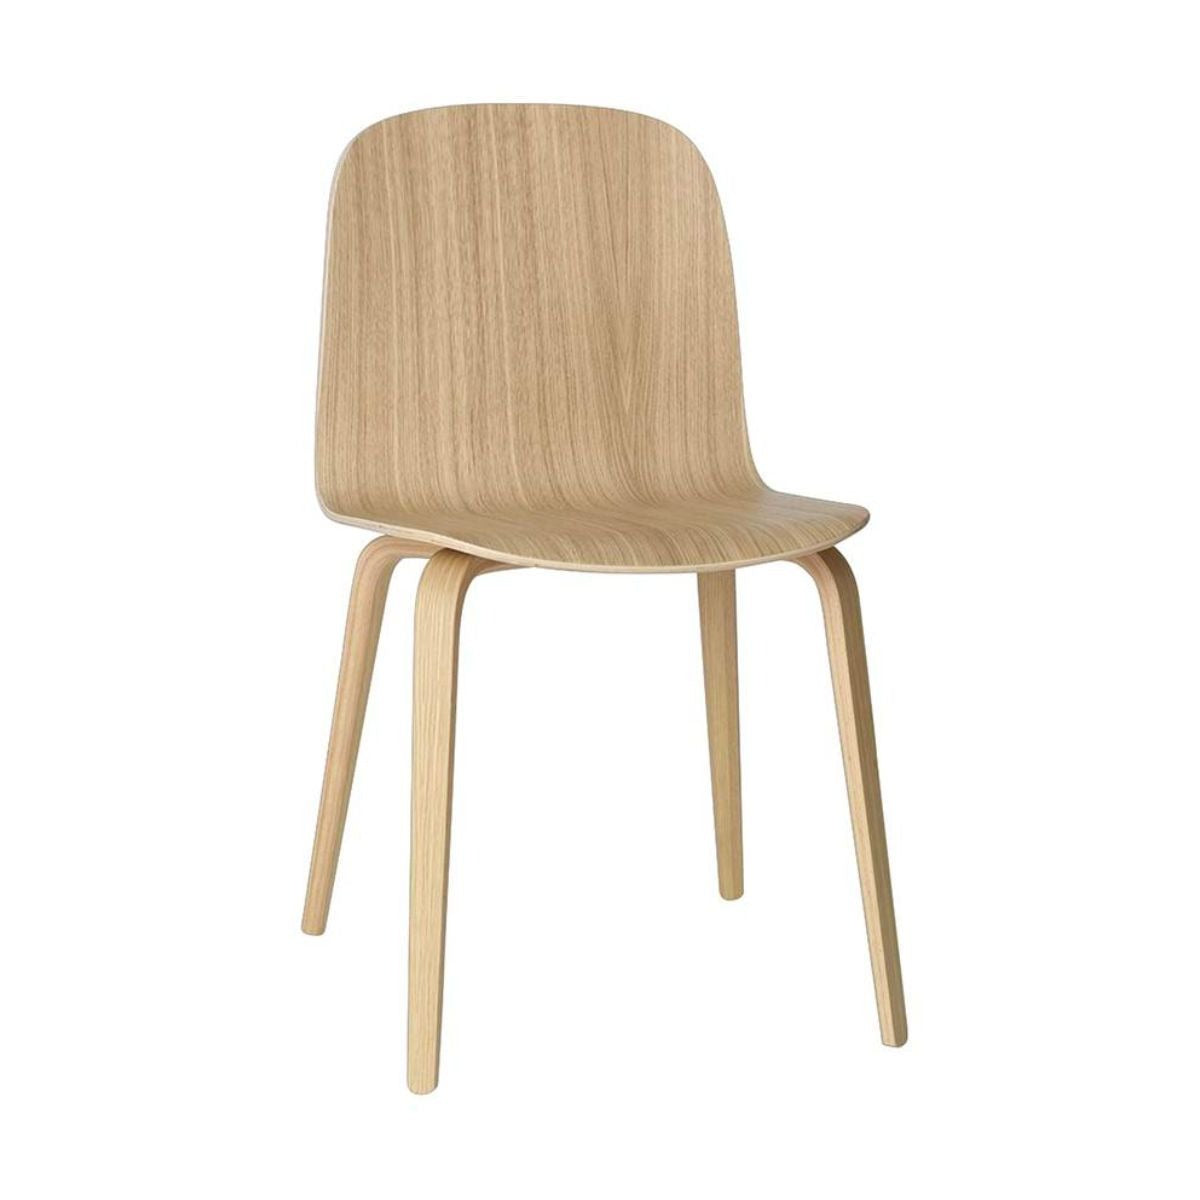 Muuto Visu Chair wood base, oak